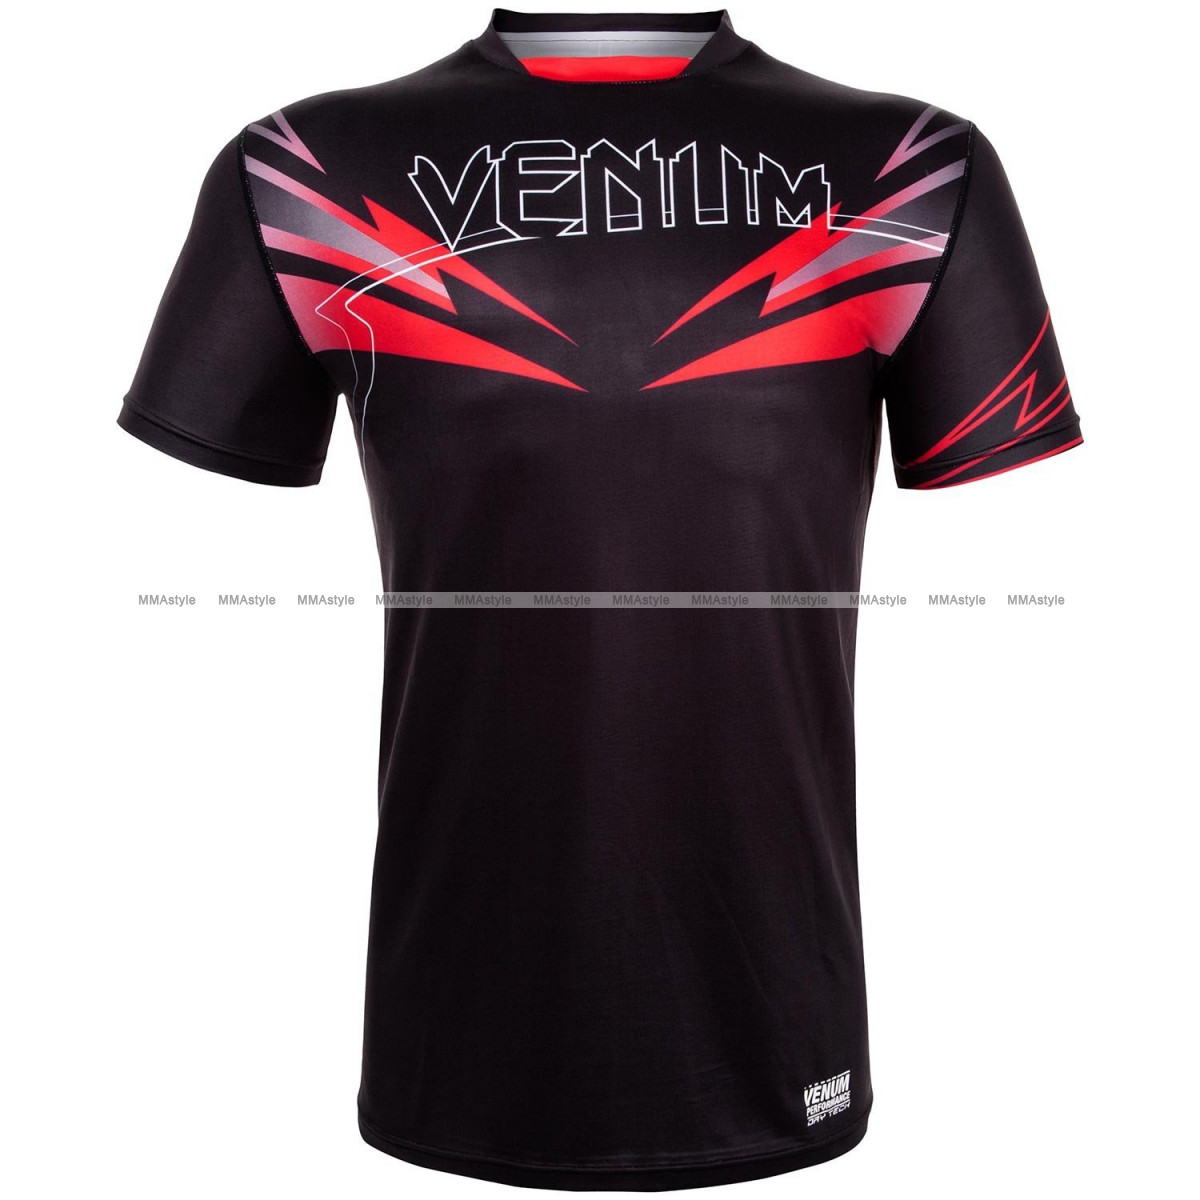 Футболка Venum Sharp 3.0 Dry Tech T-shirt Black Red